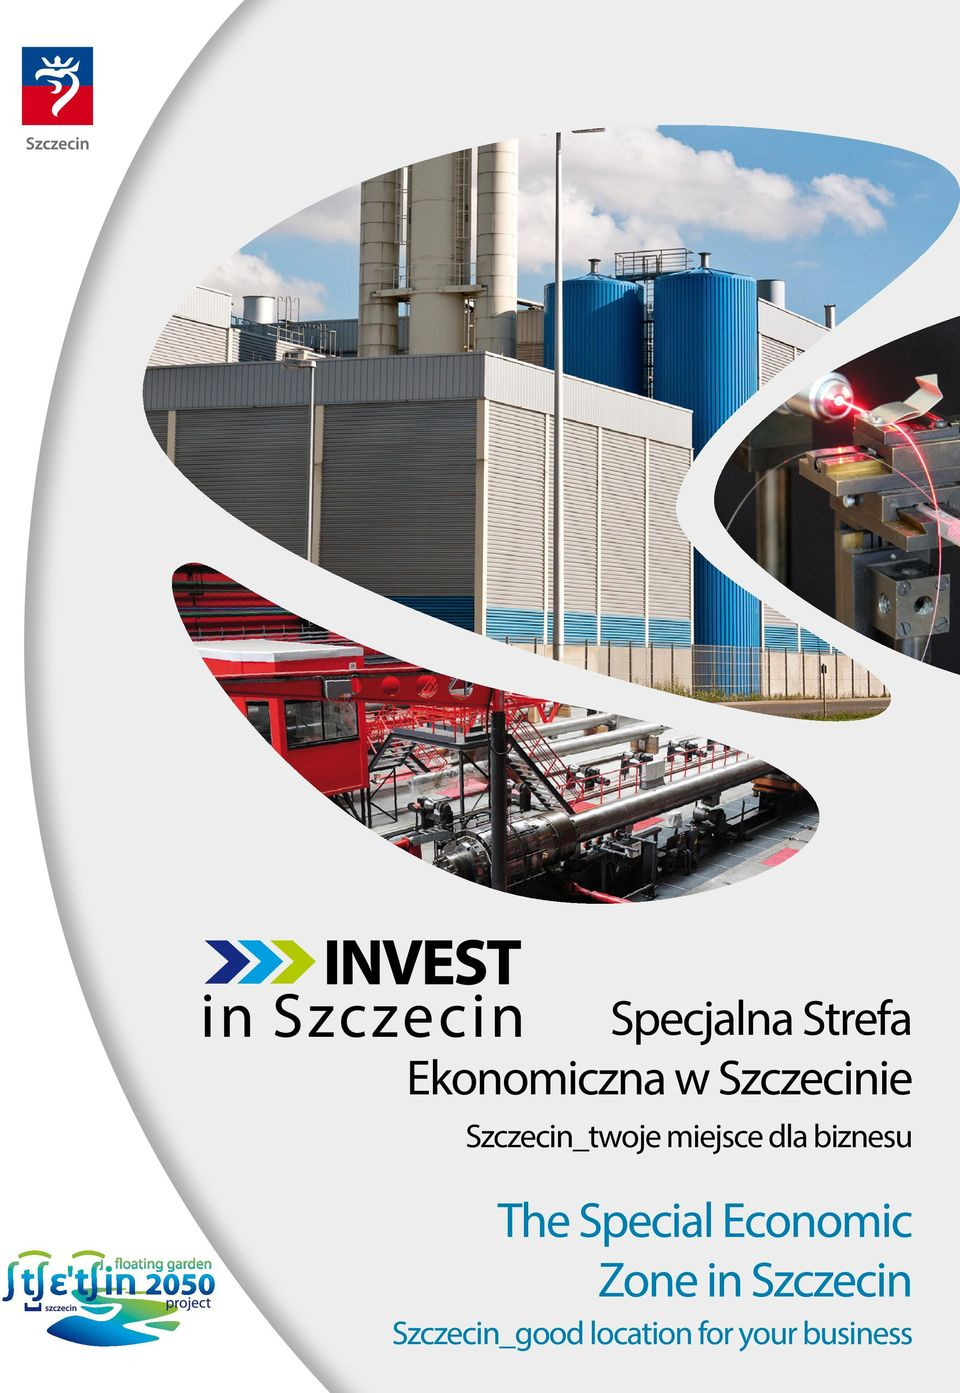 biznesu The Special Economic Zone in